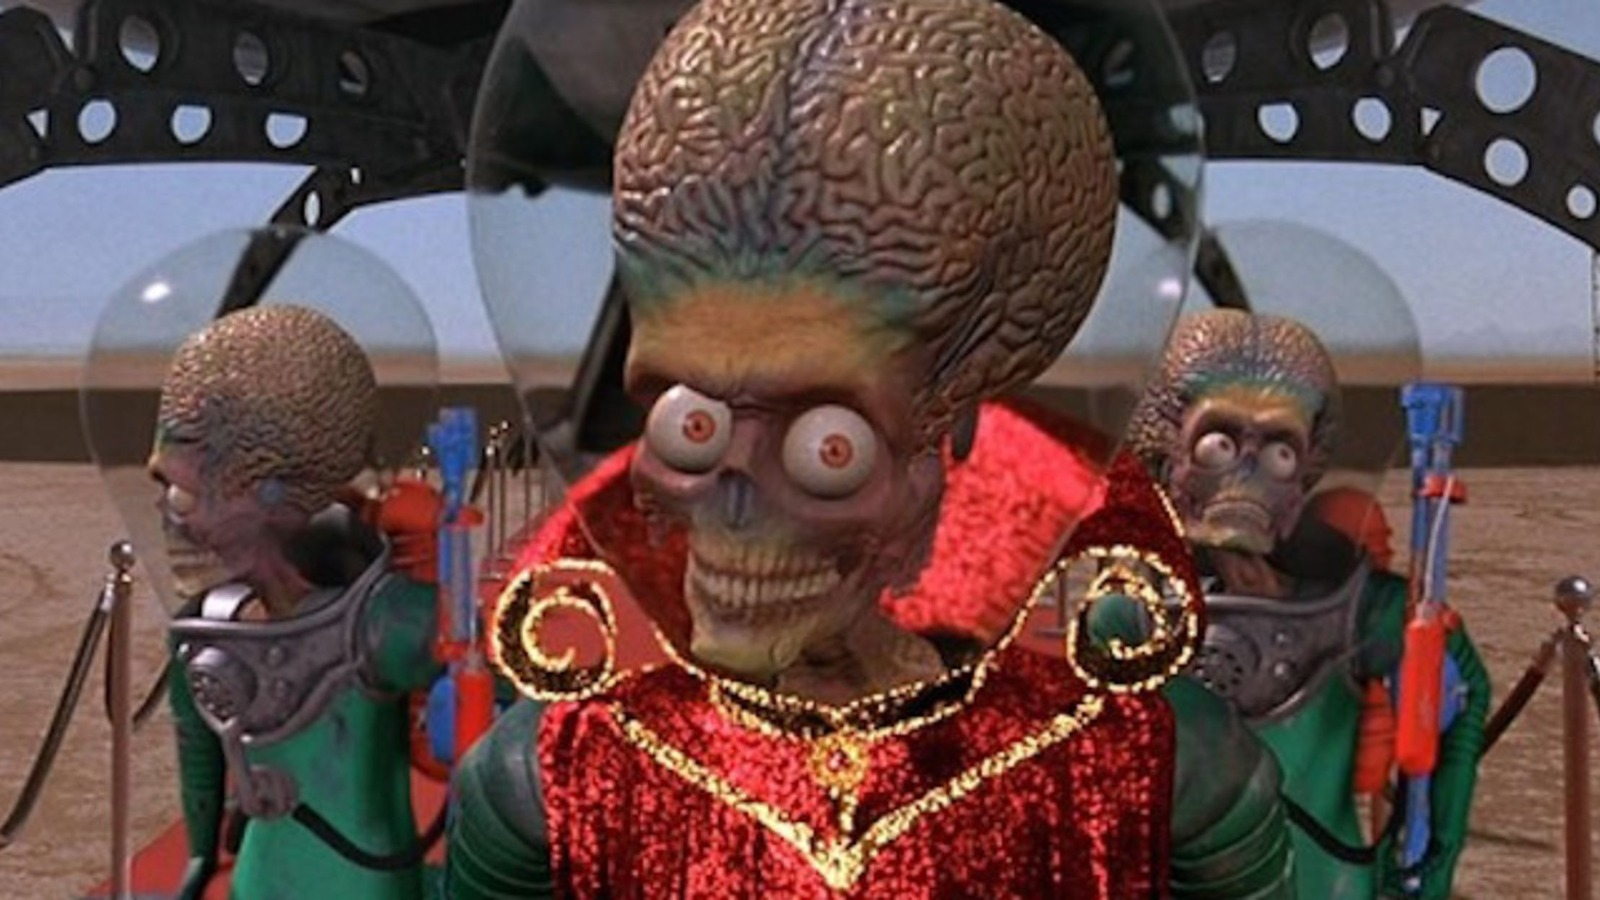 Mars Attacks!: What Ever Happened To The Cast?